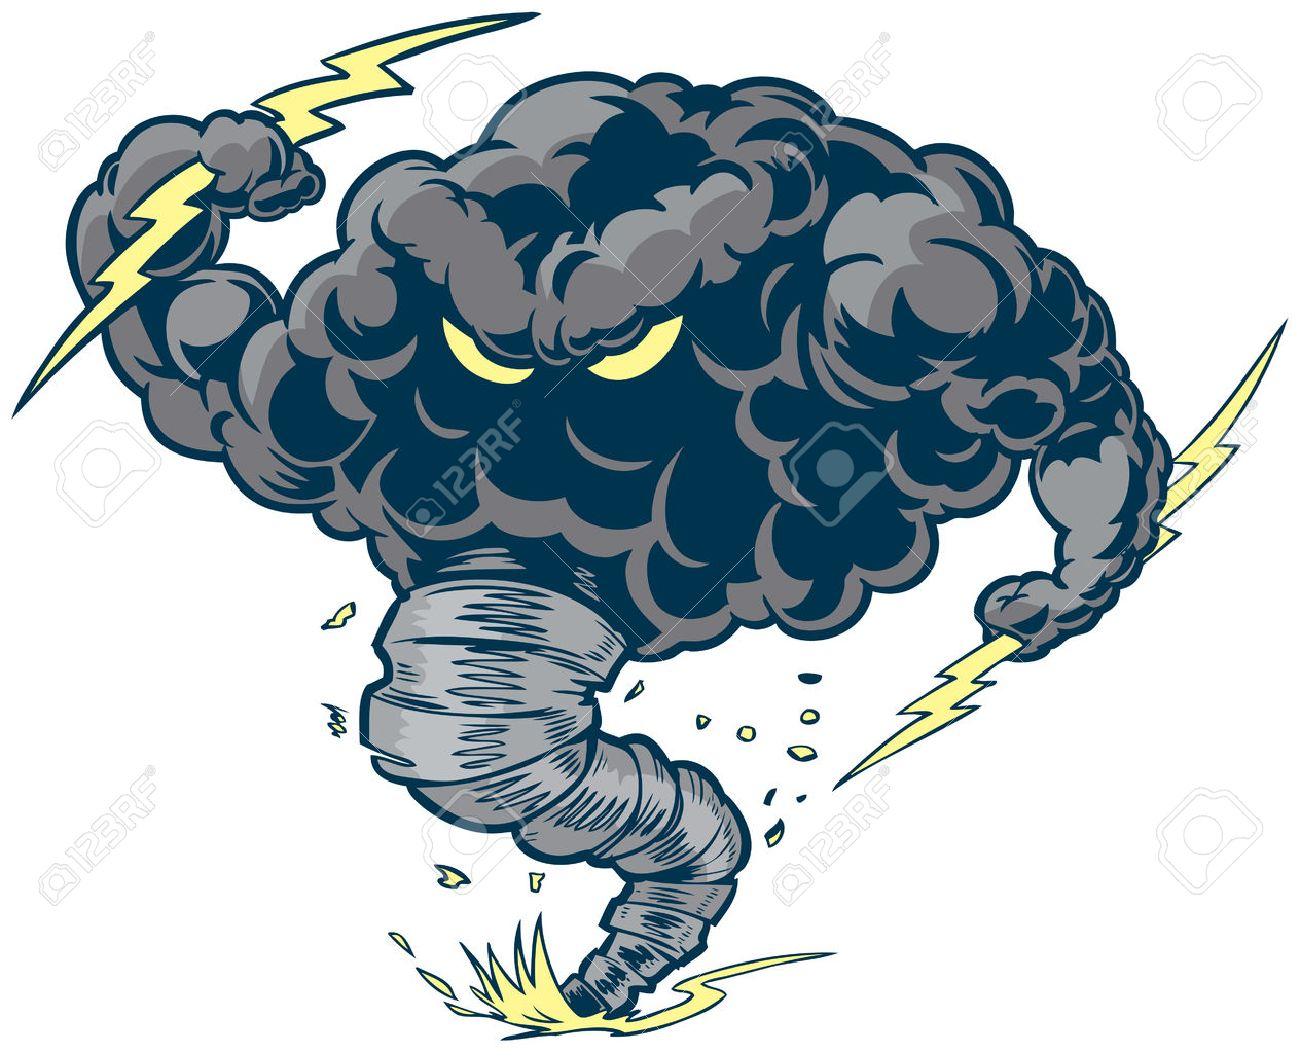 Vector Cartoon Clip Art Illustration Of A Tough Thundercloud Or Storm Cloud Mascot With Lightning Bolts